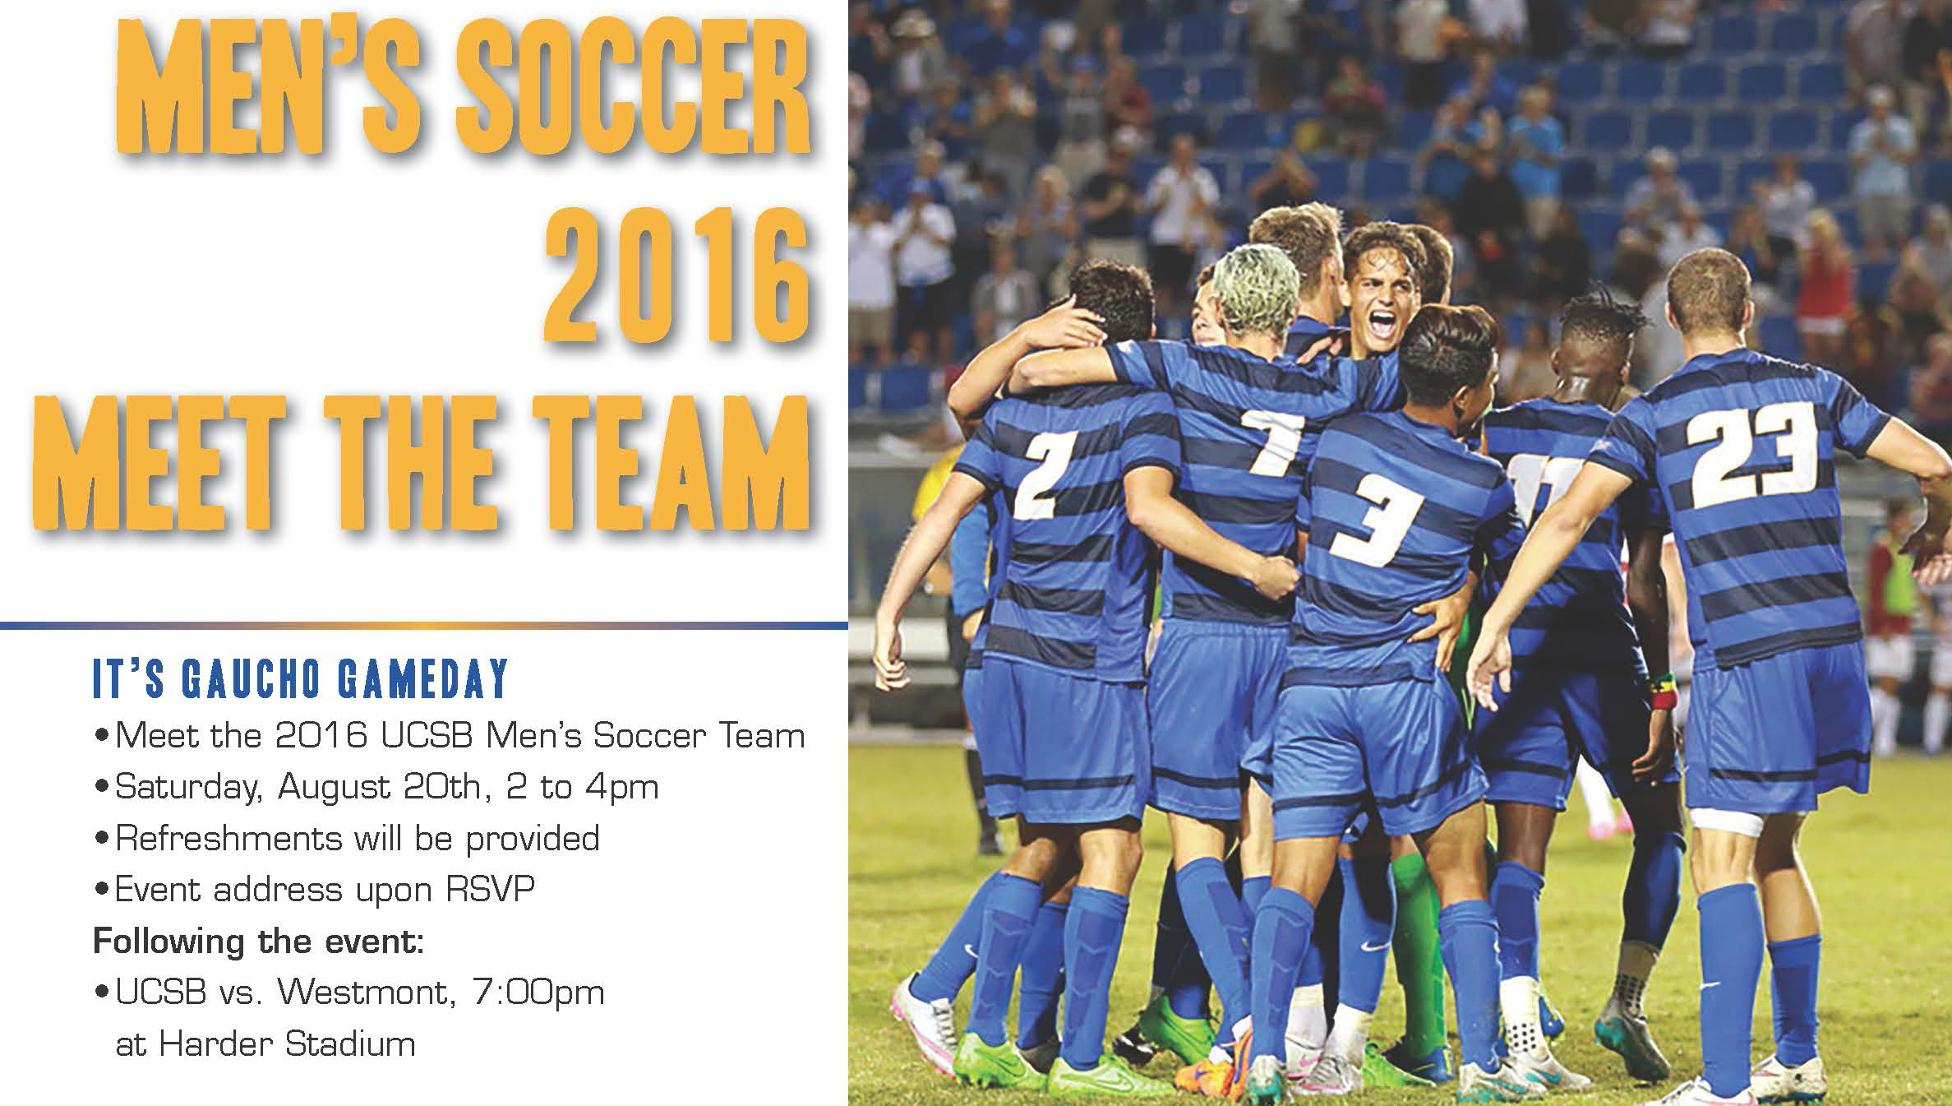 Gauchos to Hold Annual Meet the Team Event on Aug. 20